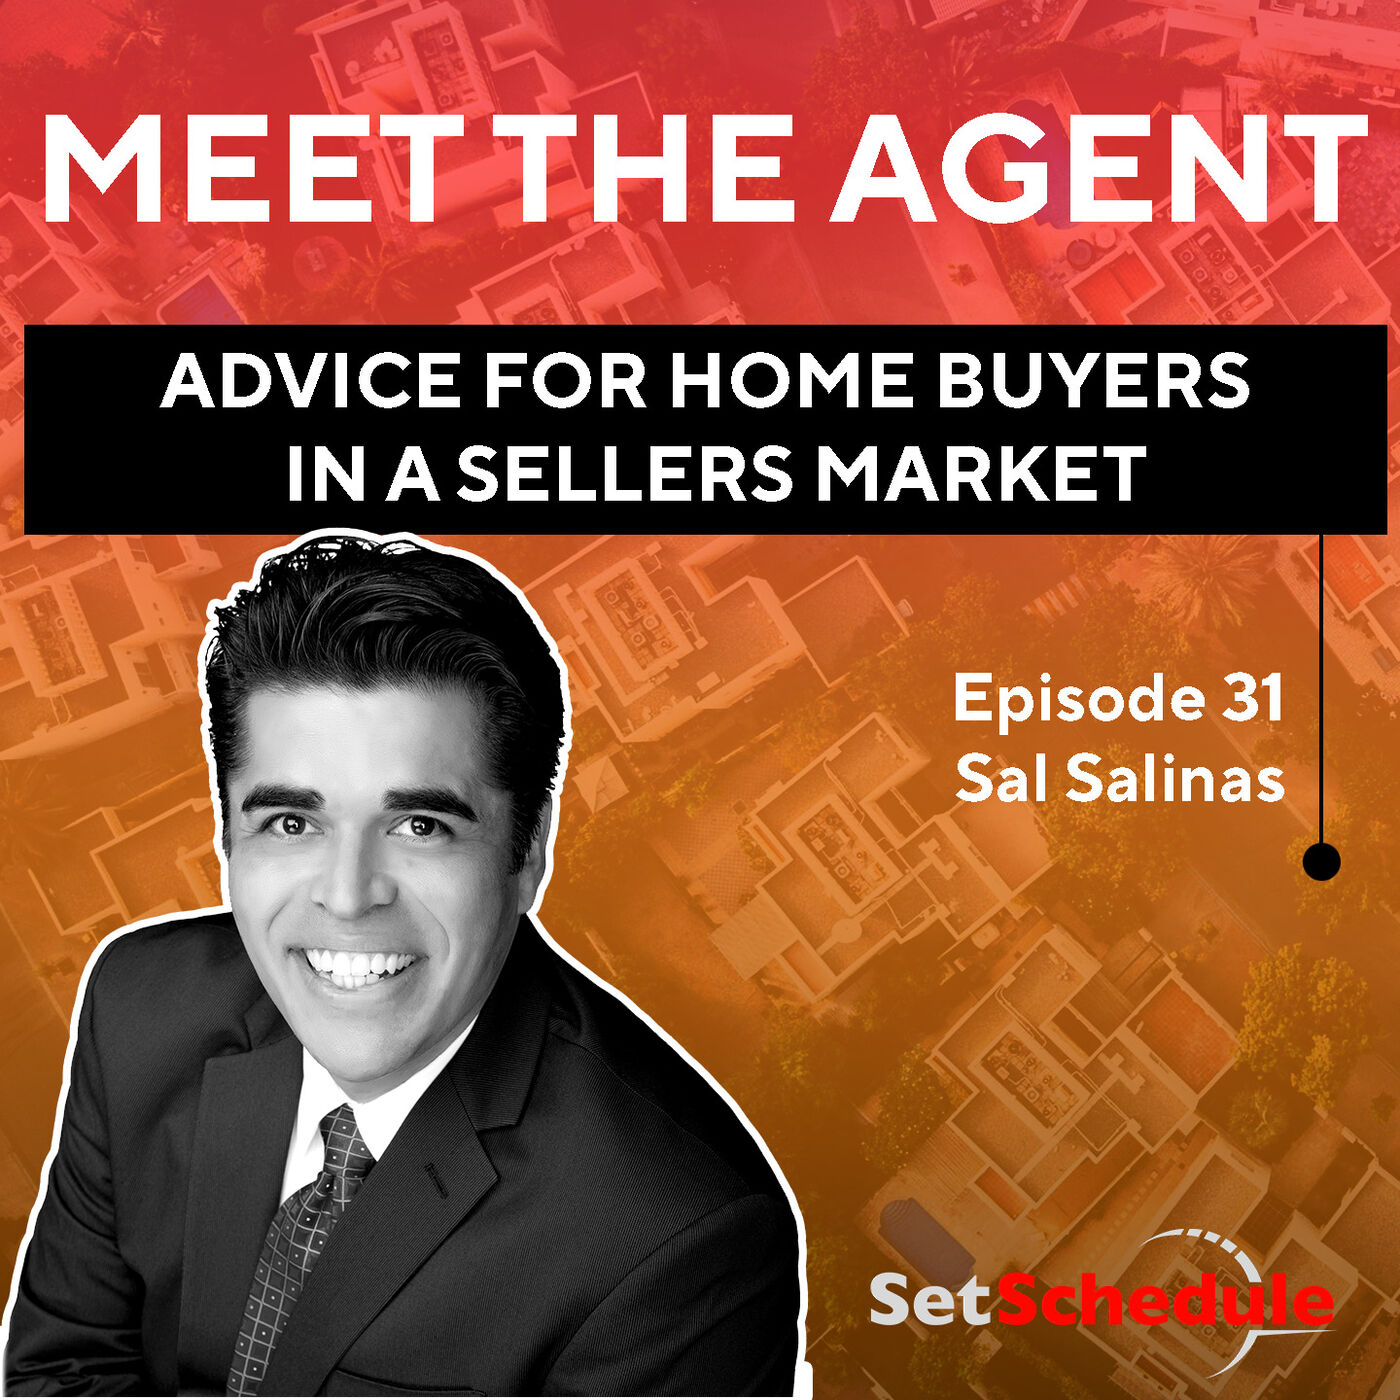 Meet the Agent Episode 31 Tips for Home Buyers in a Sellers Market